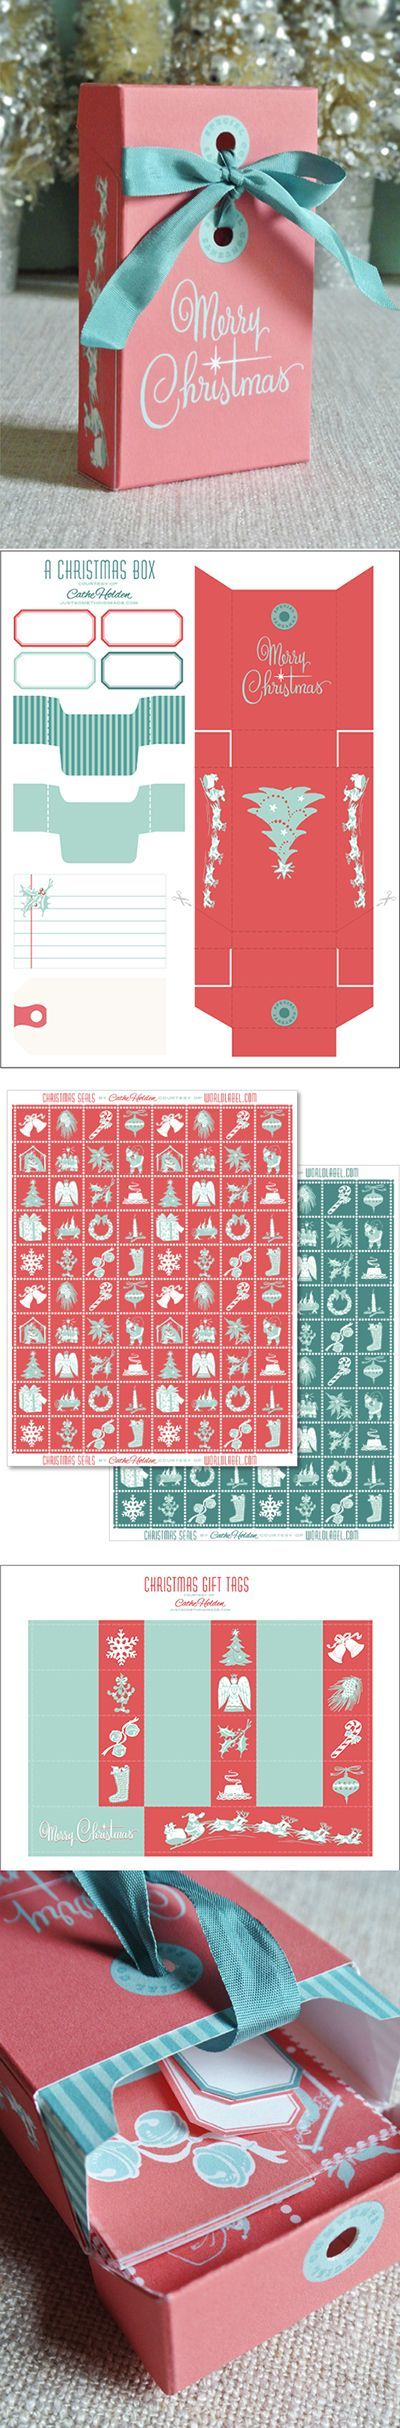 Printable Christmas Collection - Box template, Tags, Labels, bookmarks, envelope seals, labels, gift tags, etc.